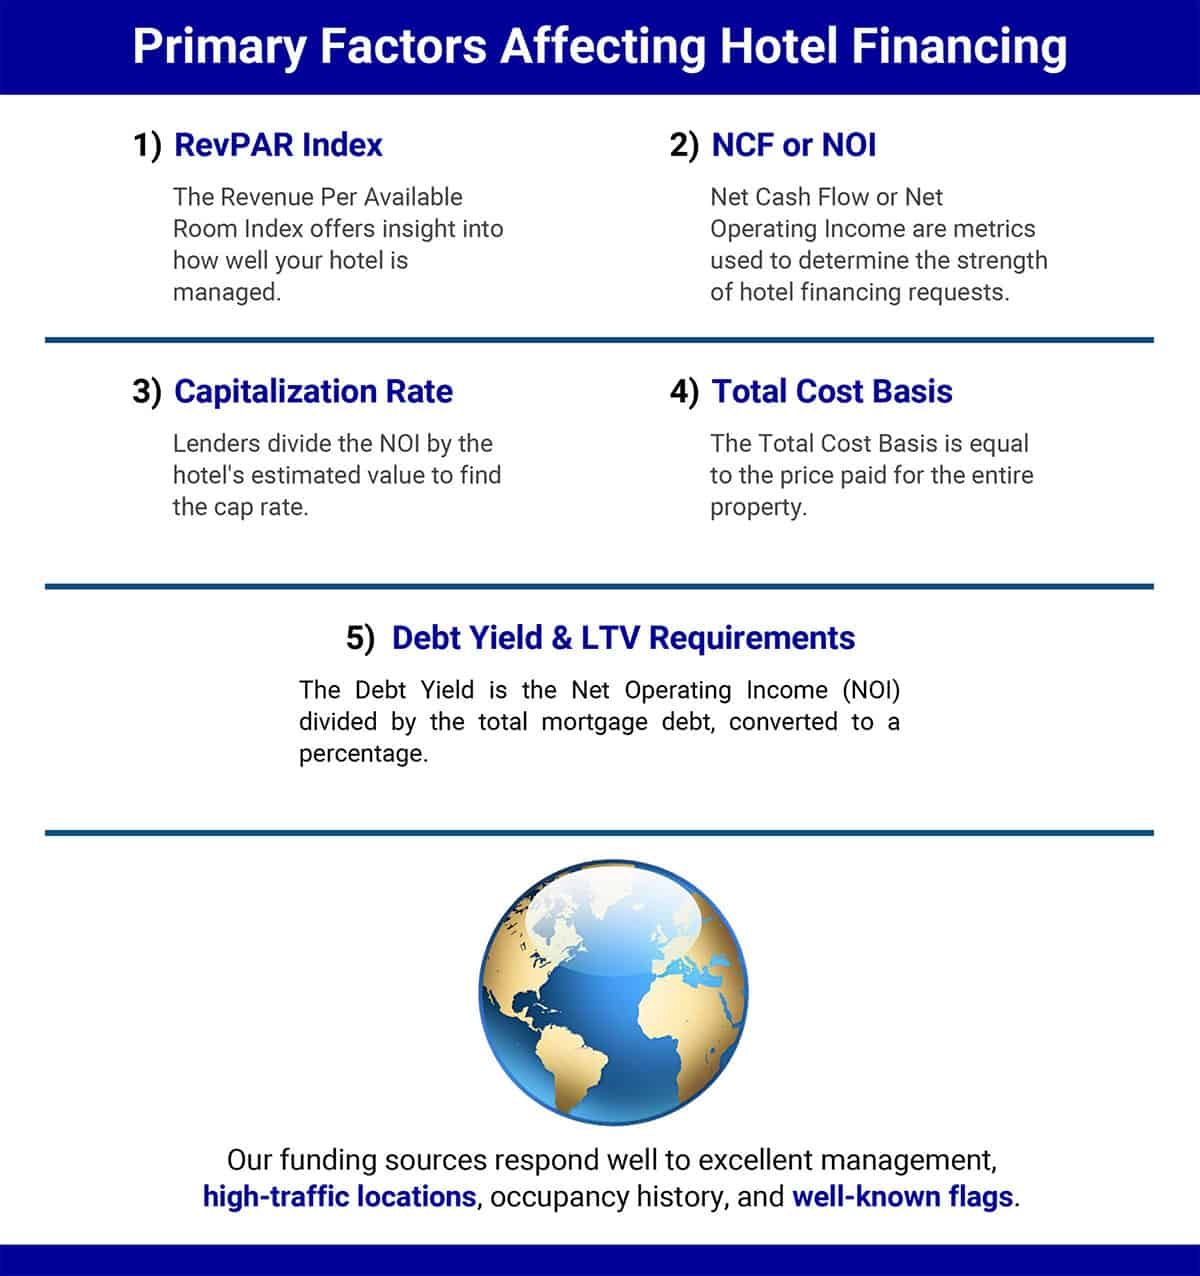 An infographic showing the primary factors affecting hotel financing